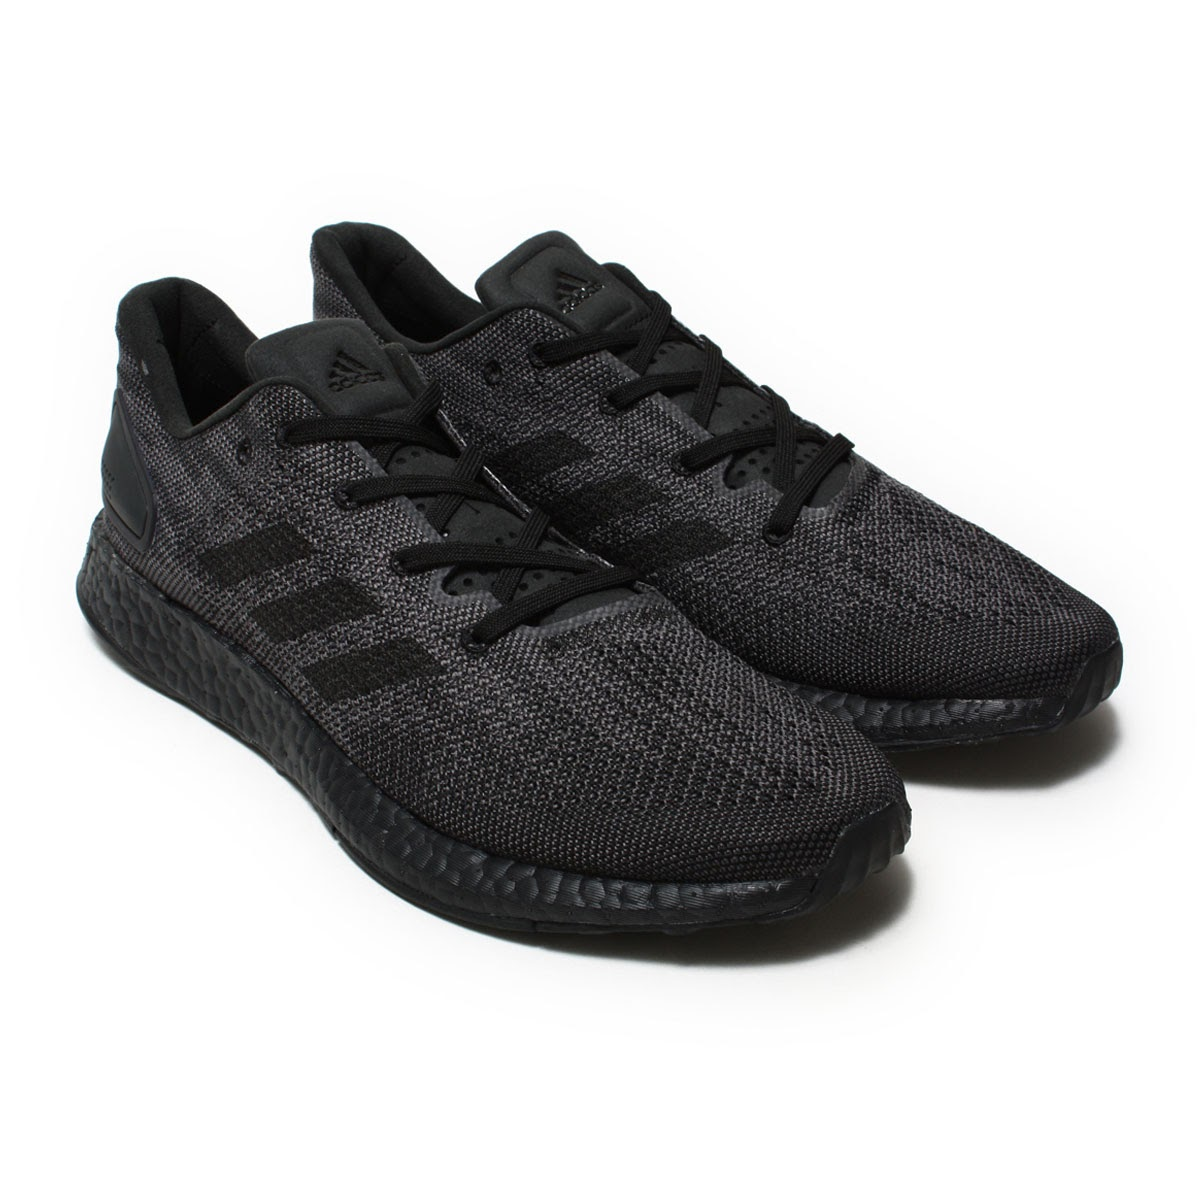 6f1f21fc11ca3 New Model comes up for the PureBOOST series that came up in spring and  summer for 17 years. The tiptoe part strengthens support characteristics by  smaller ...